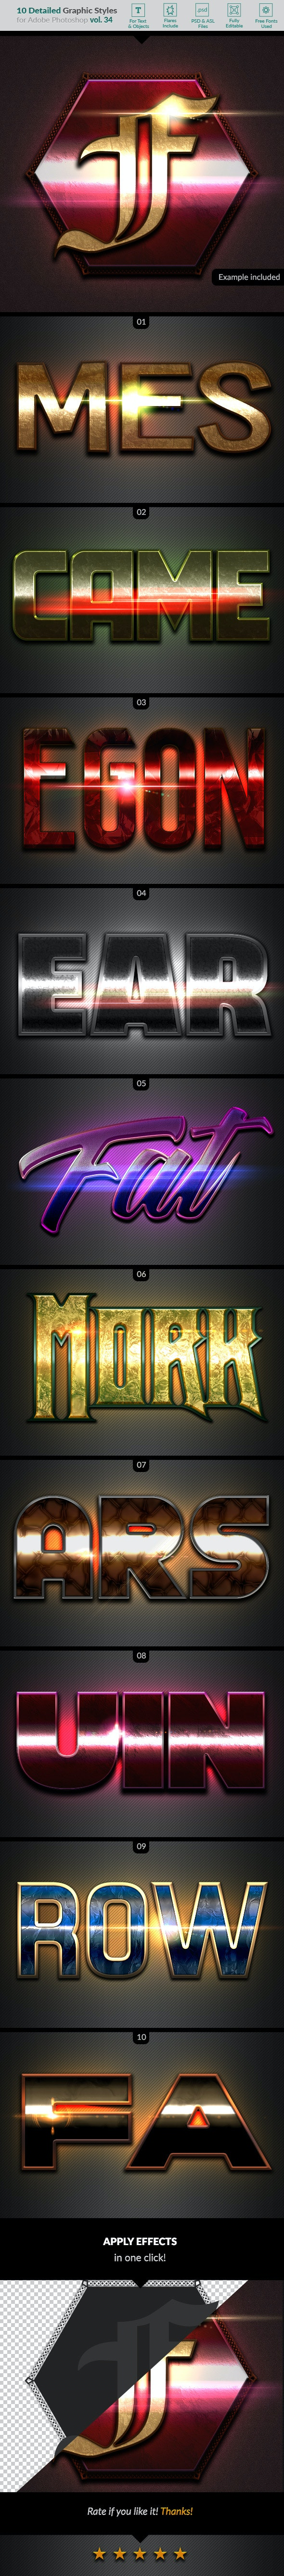 10 Text Effects Vol. 34 - Styles Photoshop